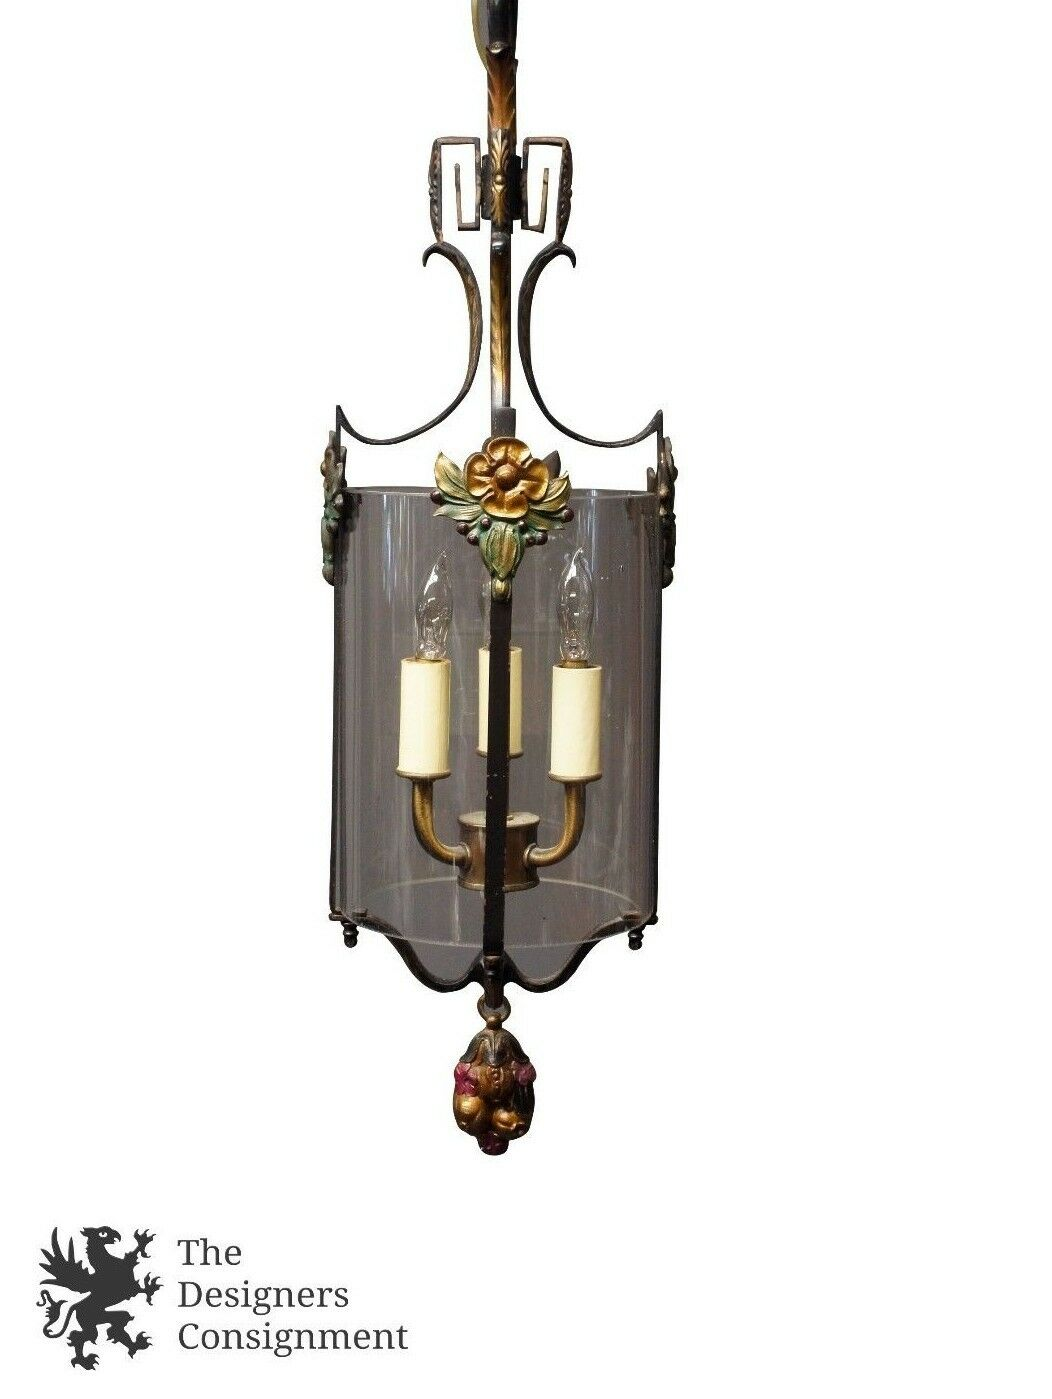 Antique 1920's Art Deco 3 Light Pendant Chandelier Brass Candelabra Designer